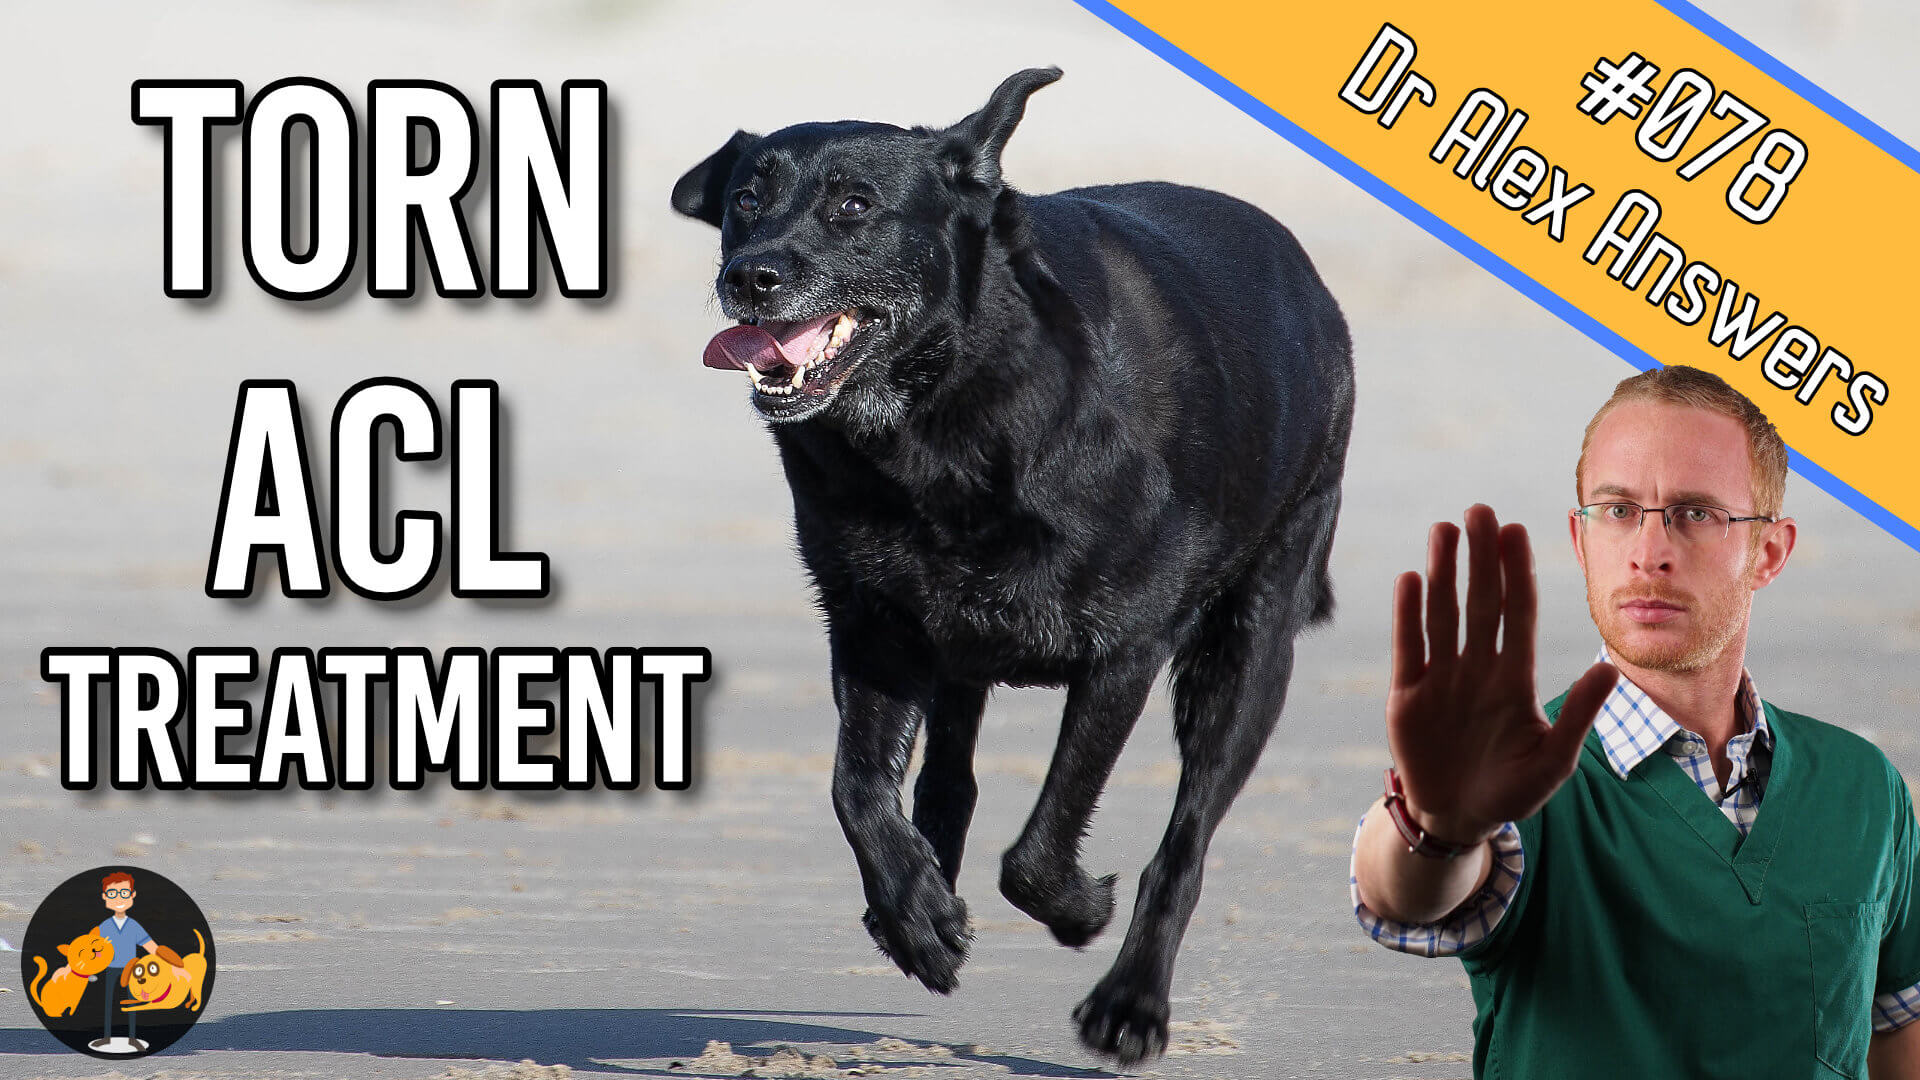 torn ACL treatment in dogs - question 78 of the Dr Alex Answers Show